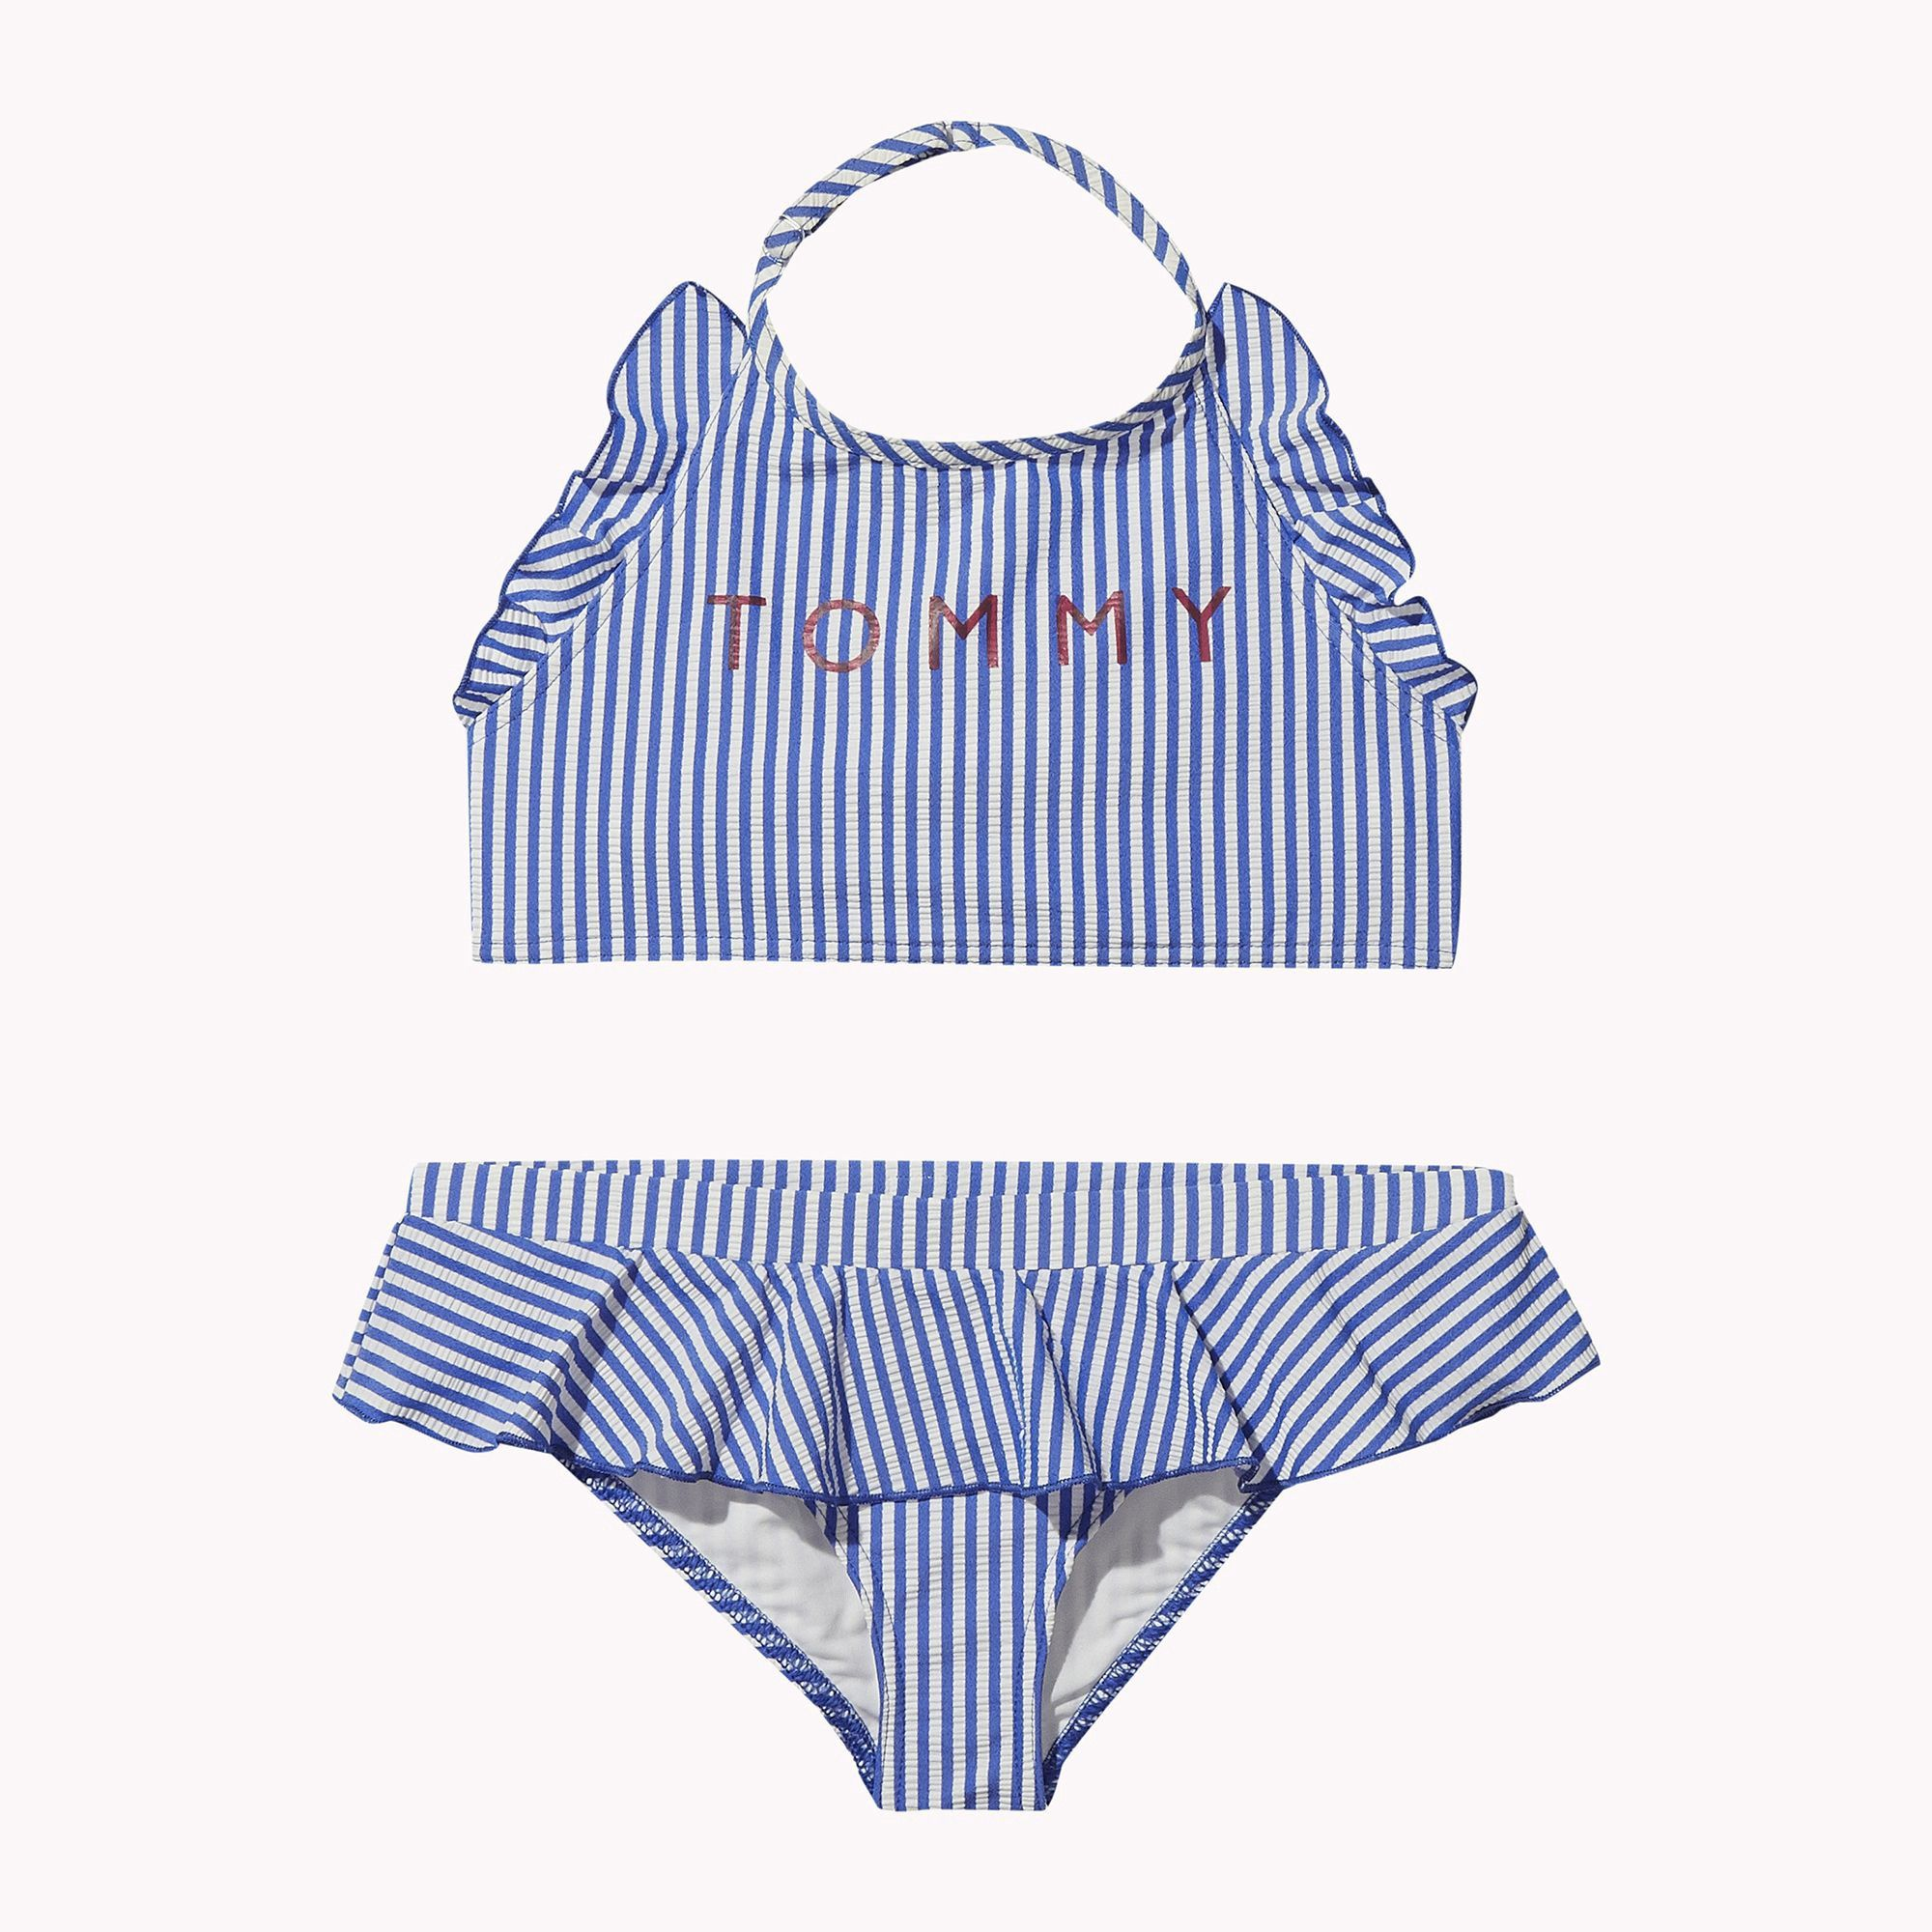 66f8f8d1d5c Tommy Hilfiger Th Kids Crop Top Stripe Bikini Set - 12-14 | Products ...